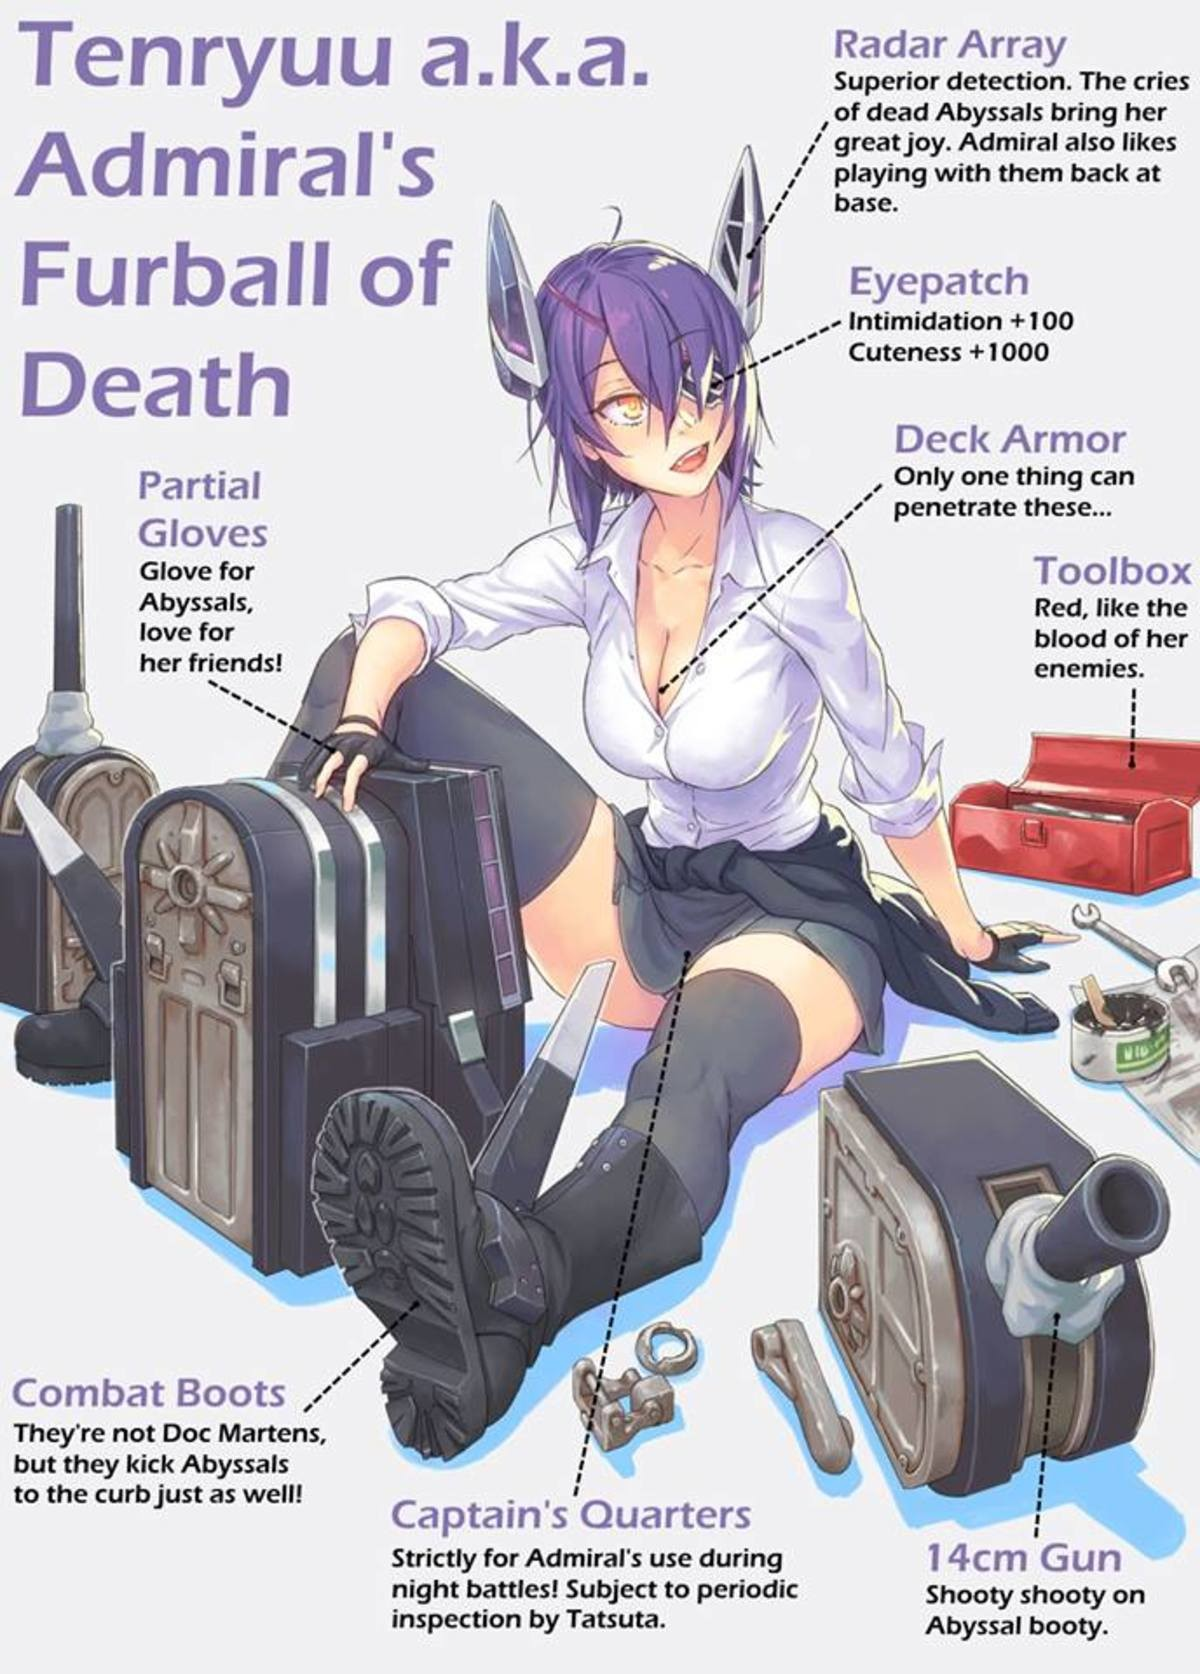 Tenryuu Time. join list: BewbDudes (2577 subs)Mention History join list: